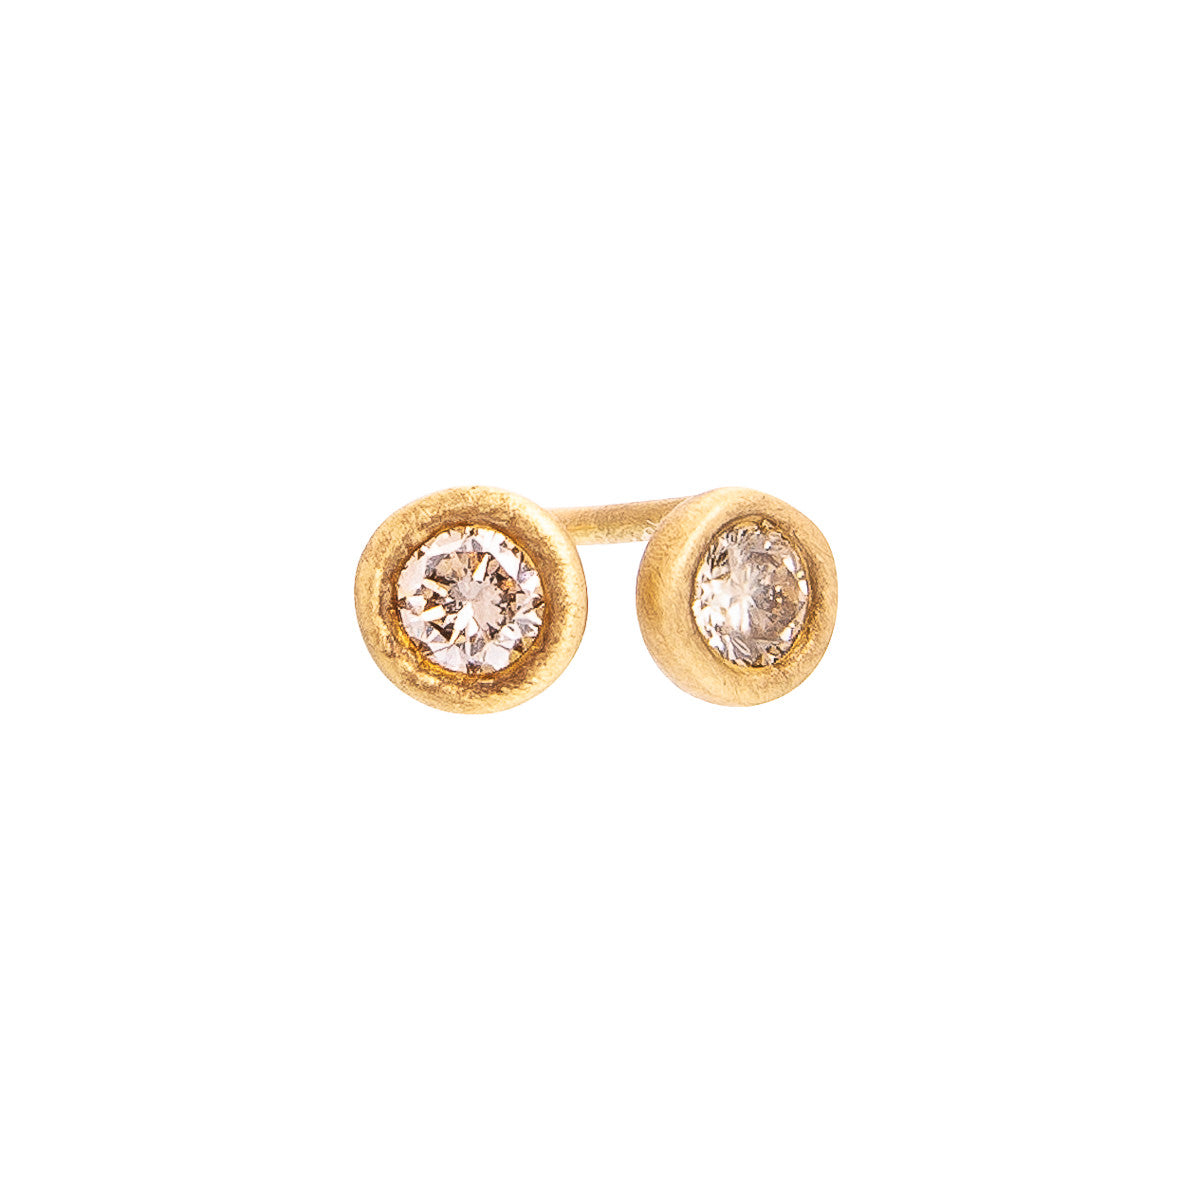 Sabel Collection 18K Yellow Gold Fancy Color Diamond Bezel Set Stud Earrings